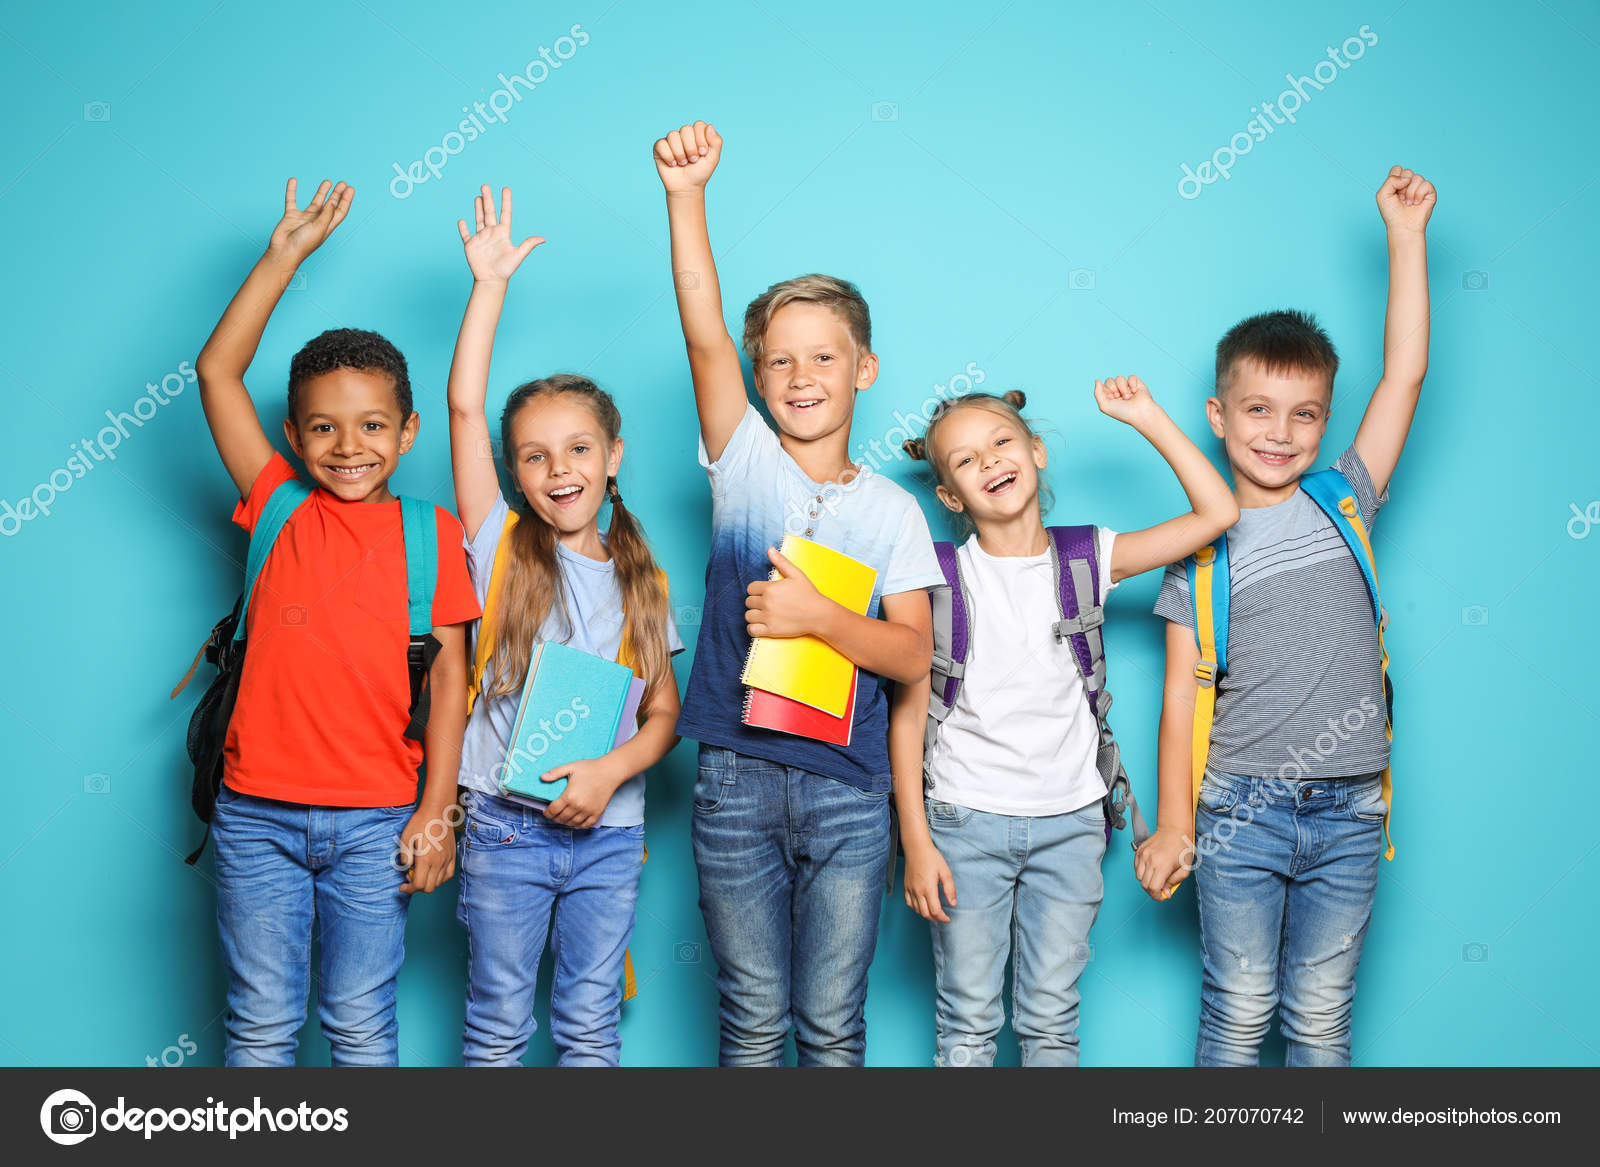 a4c1e00447 Group Little Children Backpacks School Supplies Color Background — Stock  Photo